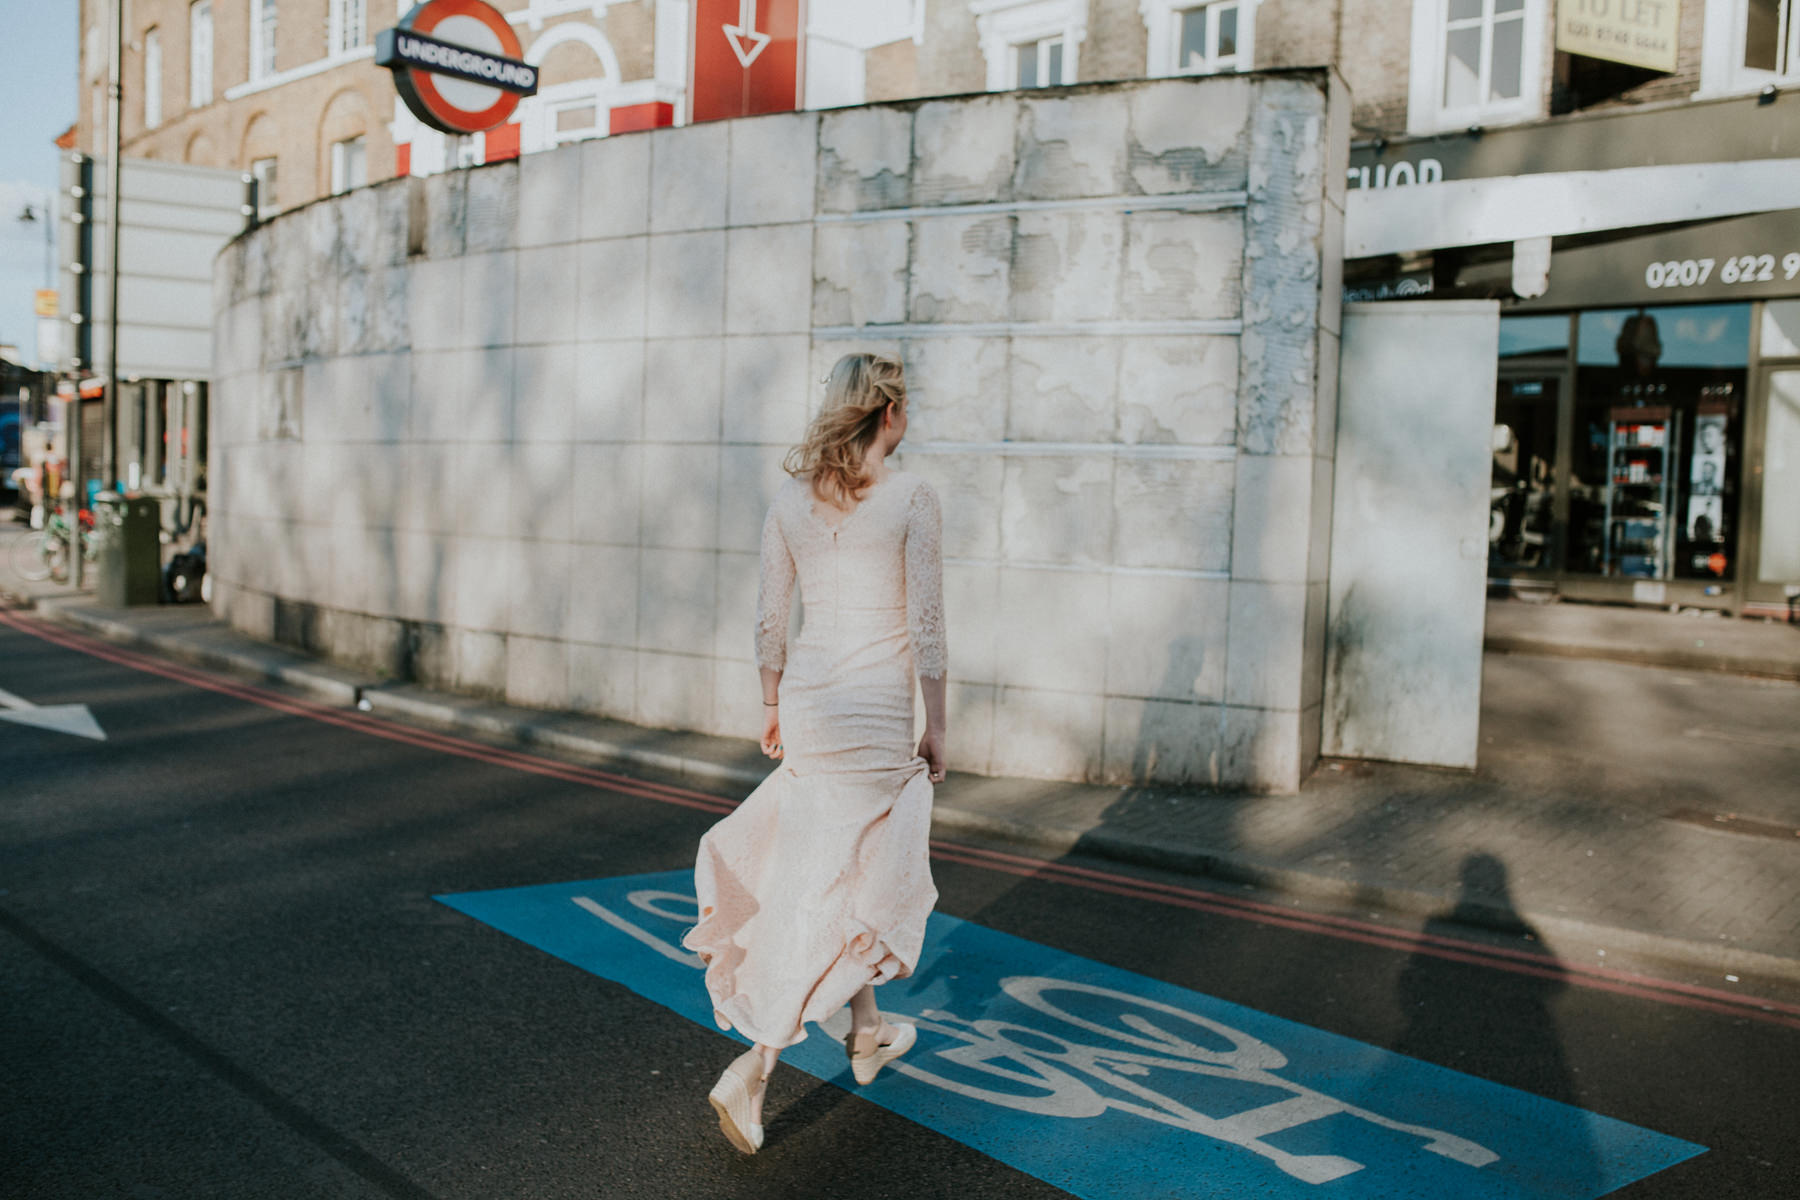 LD-681-bride-crossing-road-Clapham-common-London-wedding-photographer.jpg